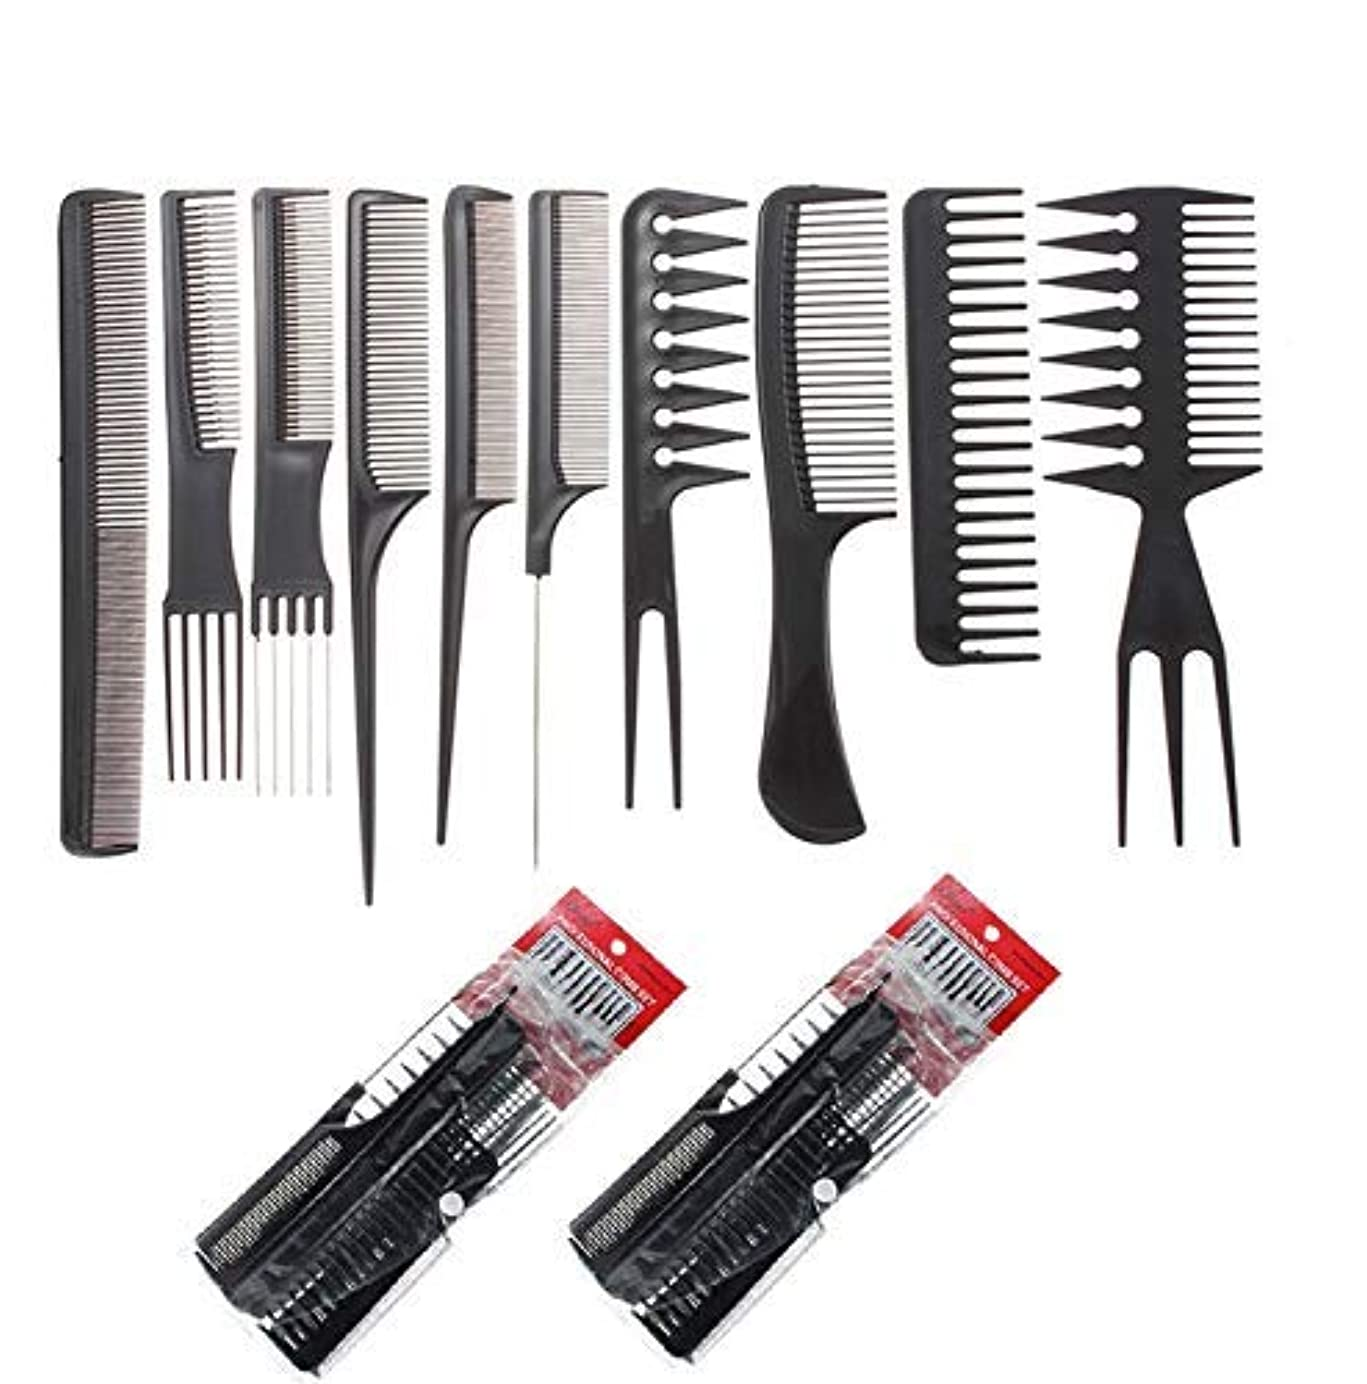 クラフト主流イタリックSBYURE 20pcs Professional Styling Comb Set,10pcs/Set,2 Set Salon Hairdressing Combs Hair Care Styling Tools Hair...